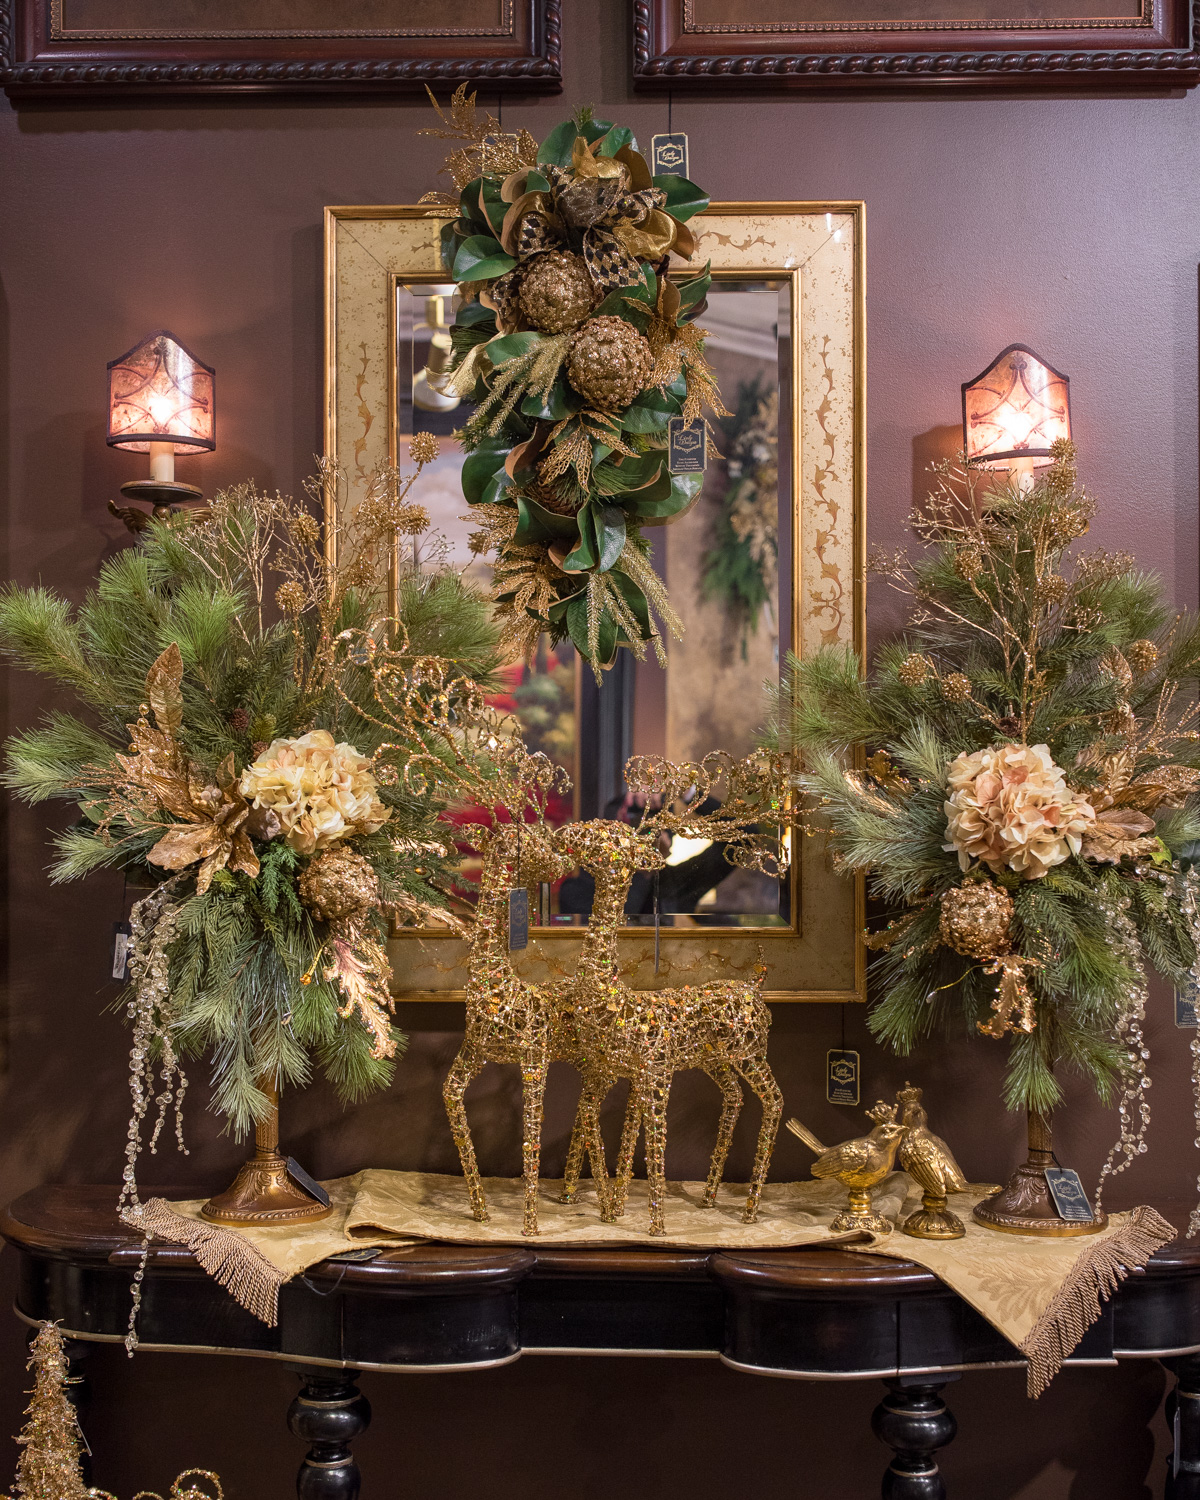 Fall Floral Arrangements 2016 Holiday Open House Linly Designs